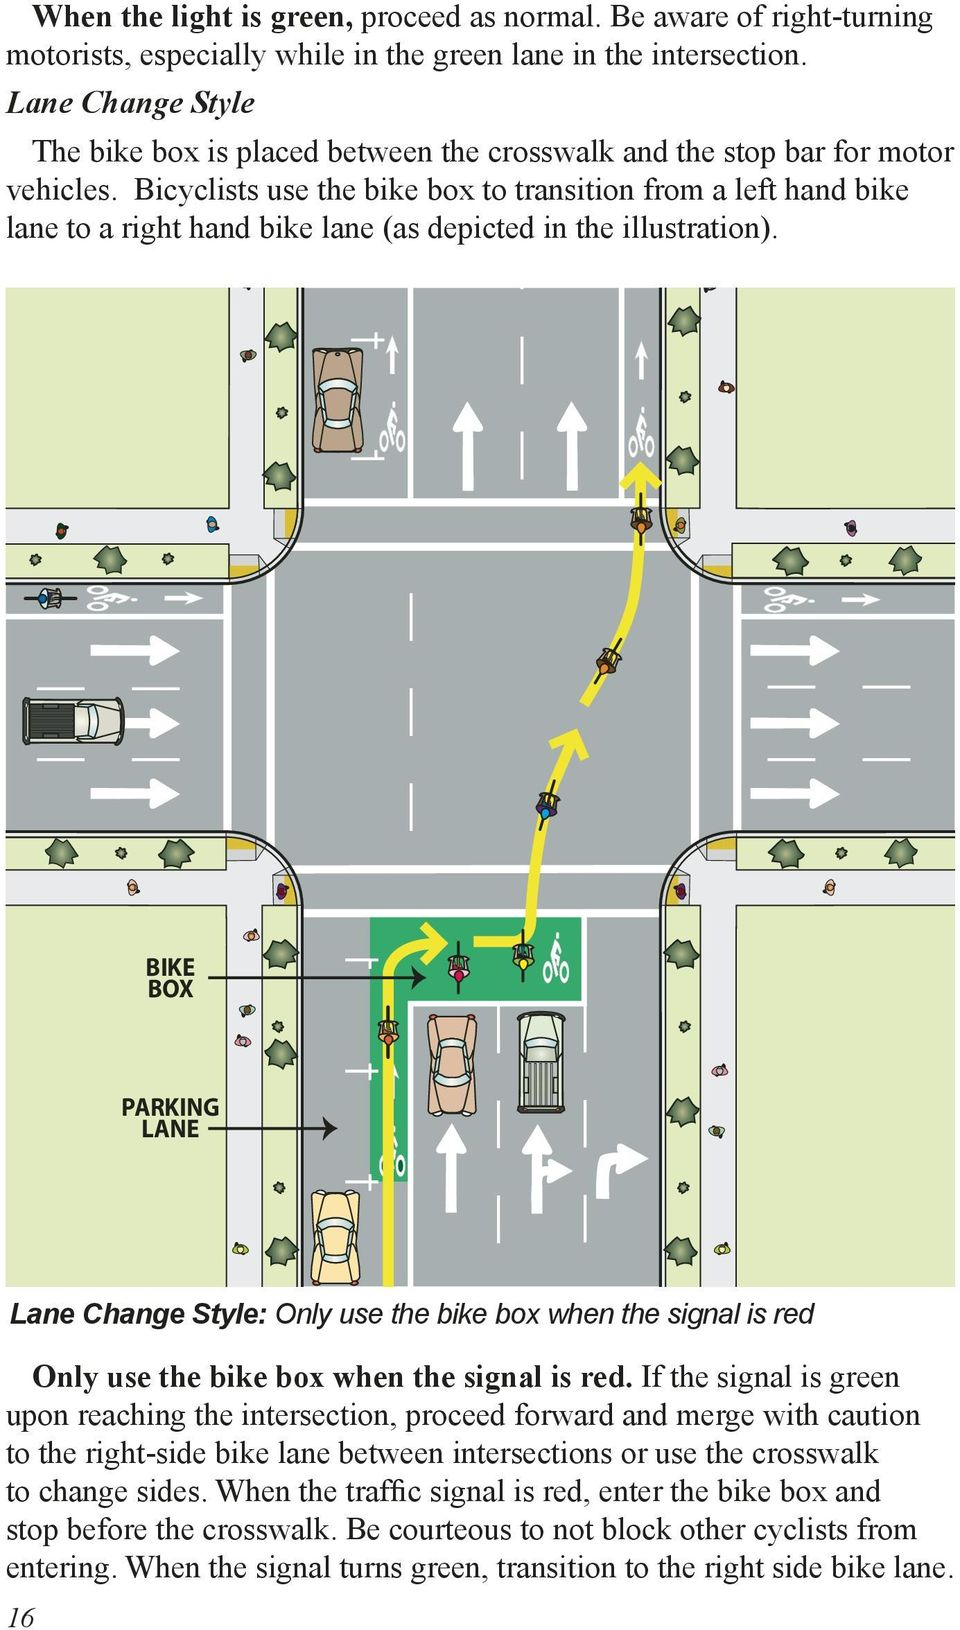 Bicyclists use the bike box to transition from a left hand bike lane to a right hand bike lane (as depicted in the illustration).